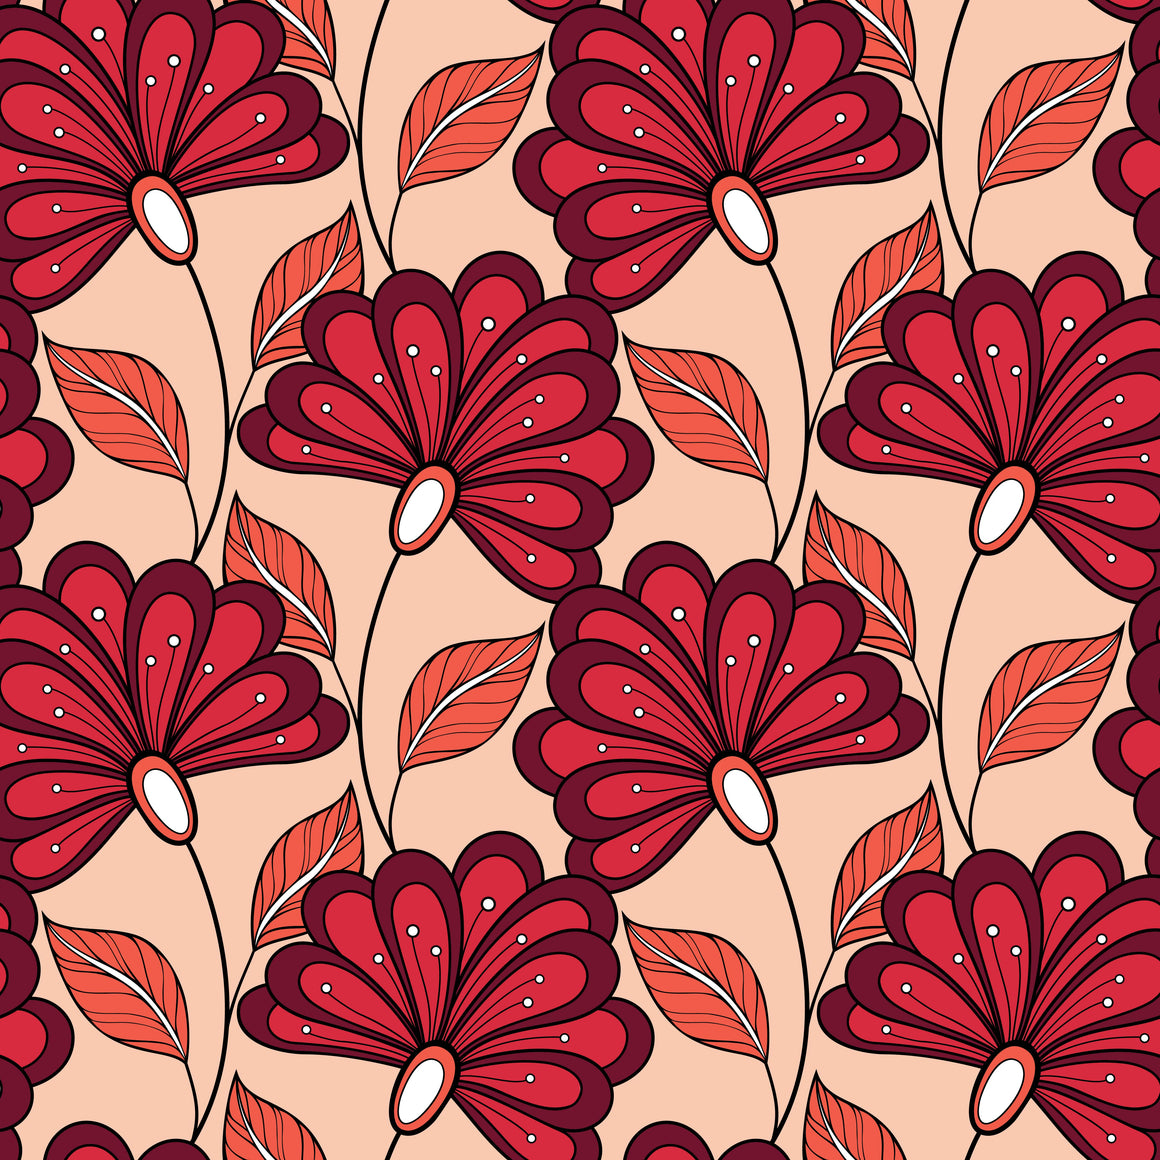 Feather looking red flowers on vines with red-orange leaves and a peach background